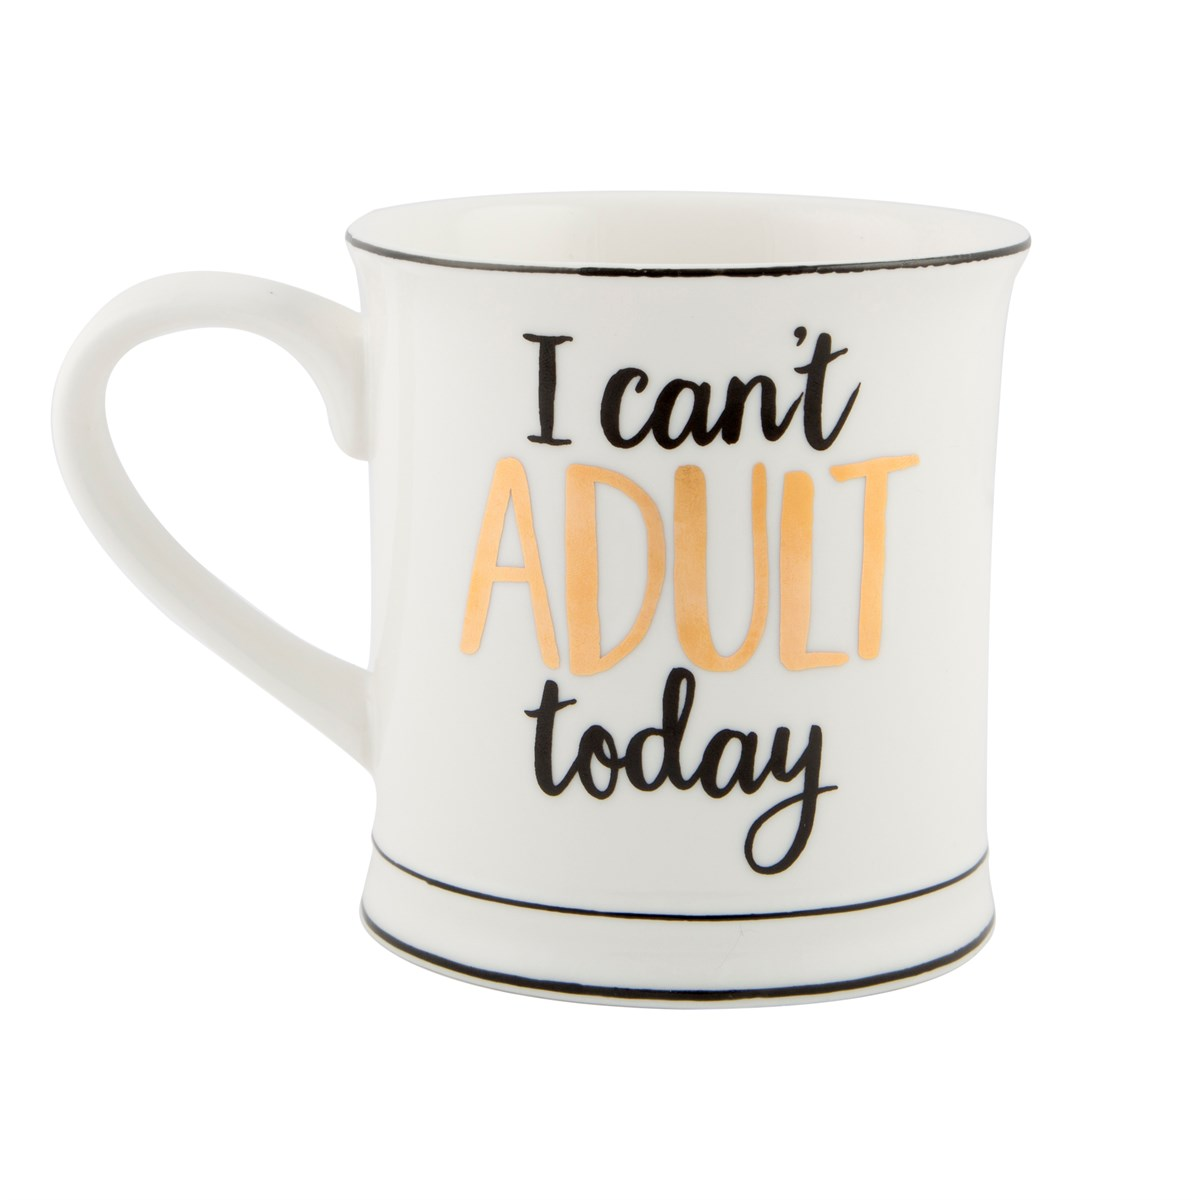 Metallic Monochrome I Can't Adult Today Mug